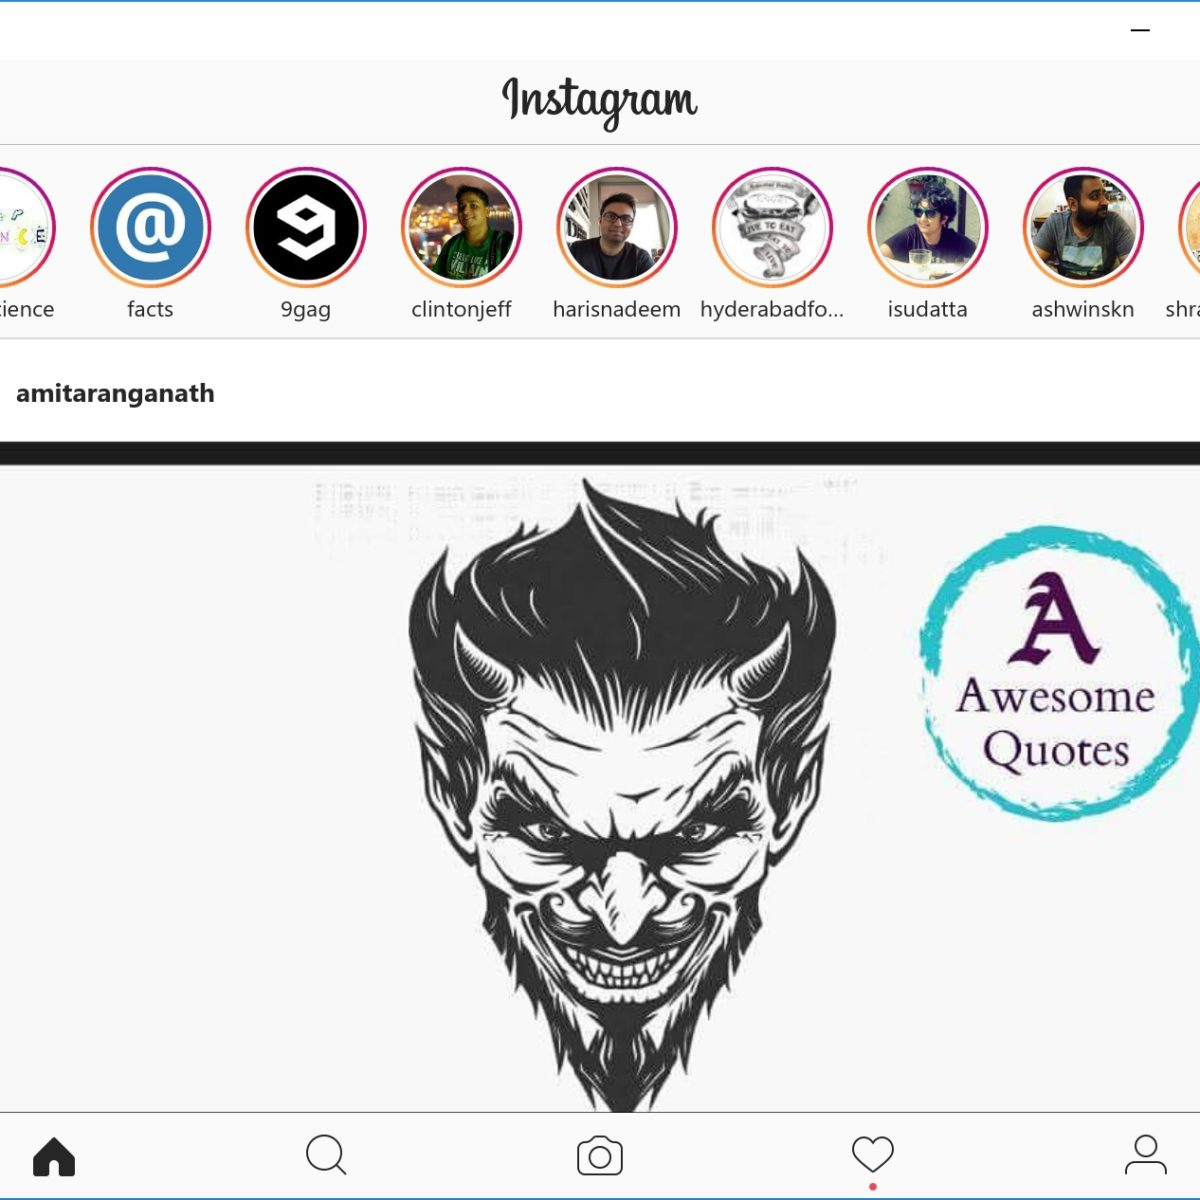 Instagram for Windows 10 PC